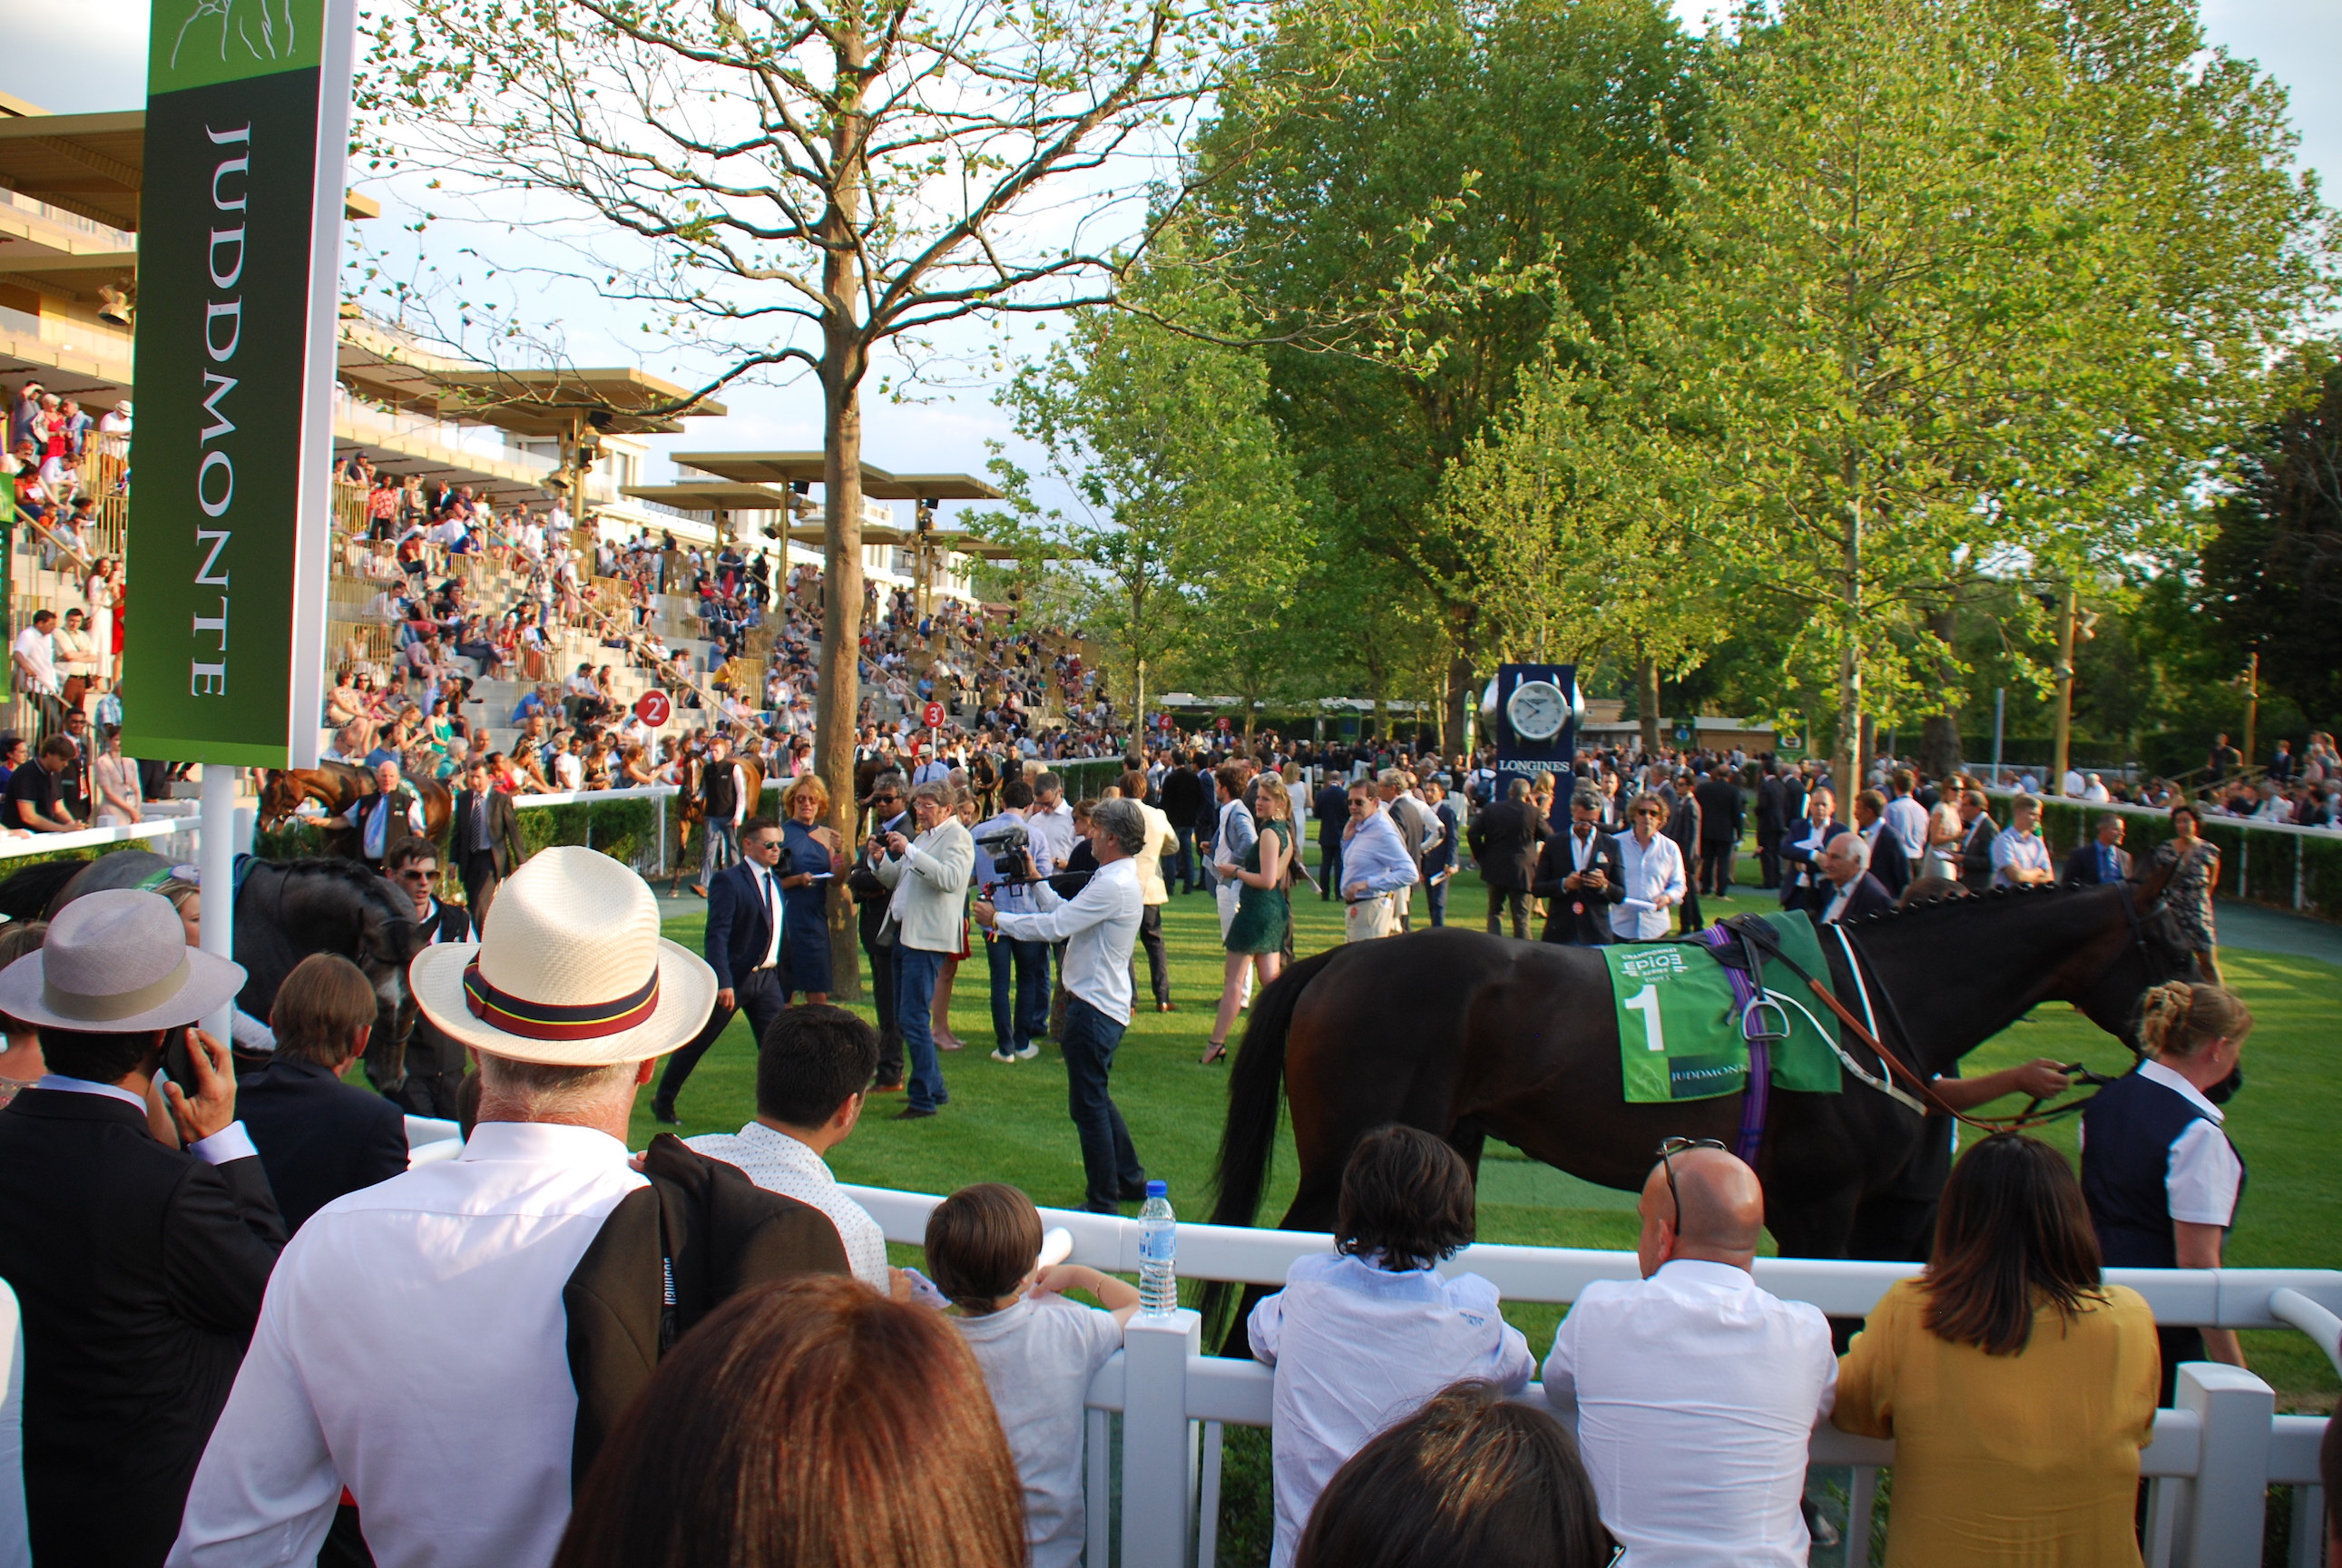 The new-look ParisLongchamp paddock on Juddmonte Grand Prix de Paris day in July. Photo: John Gilmore